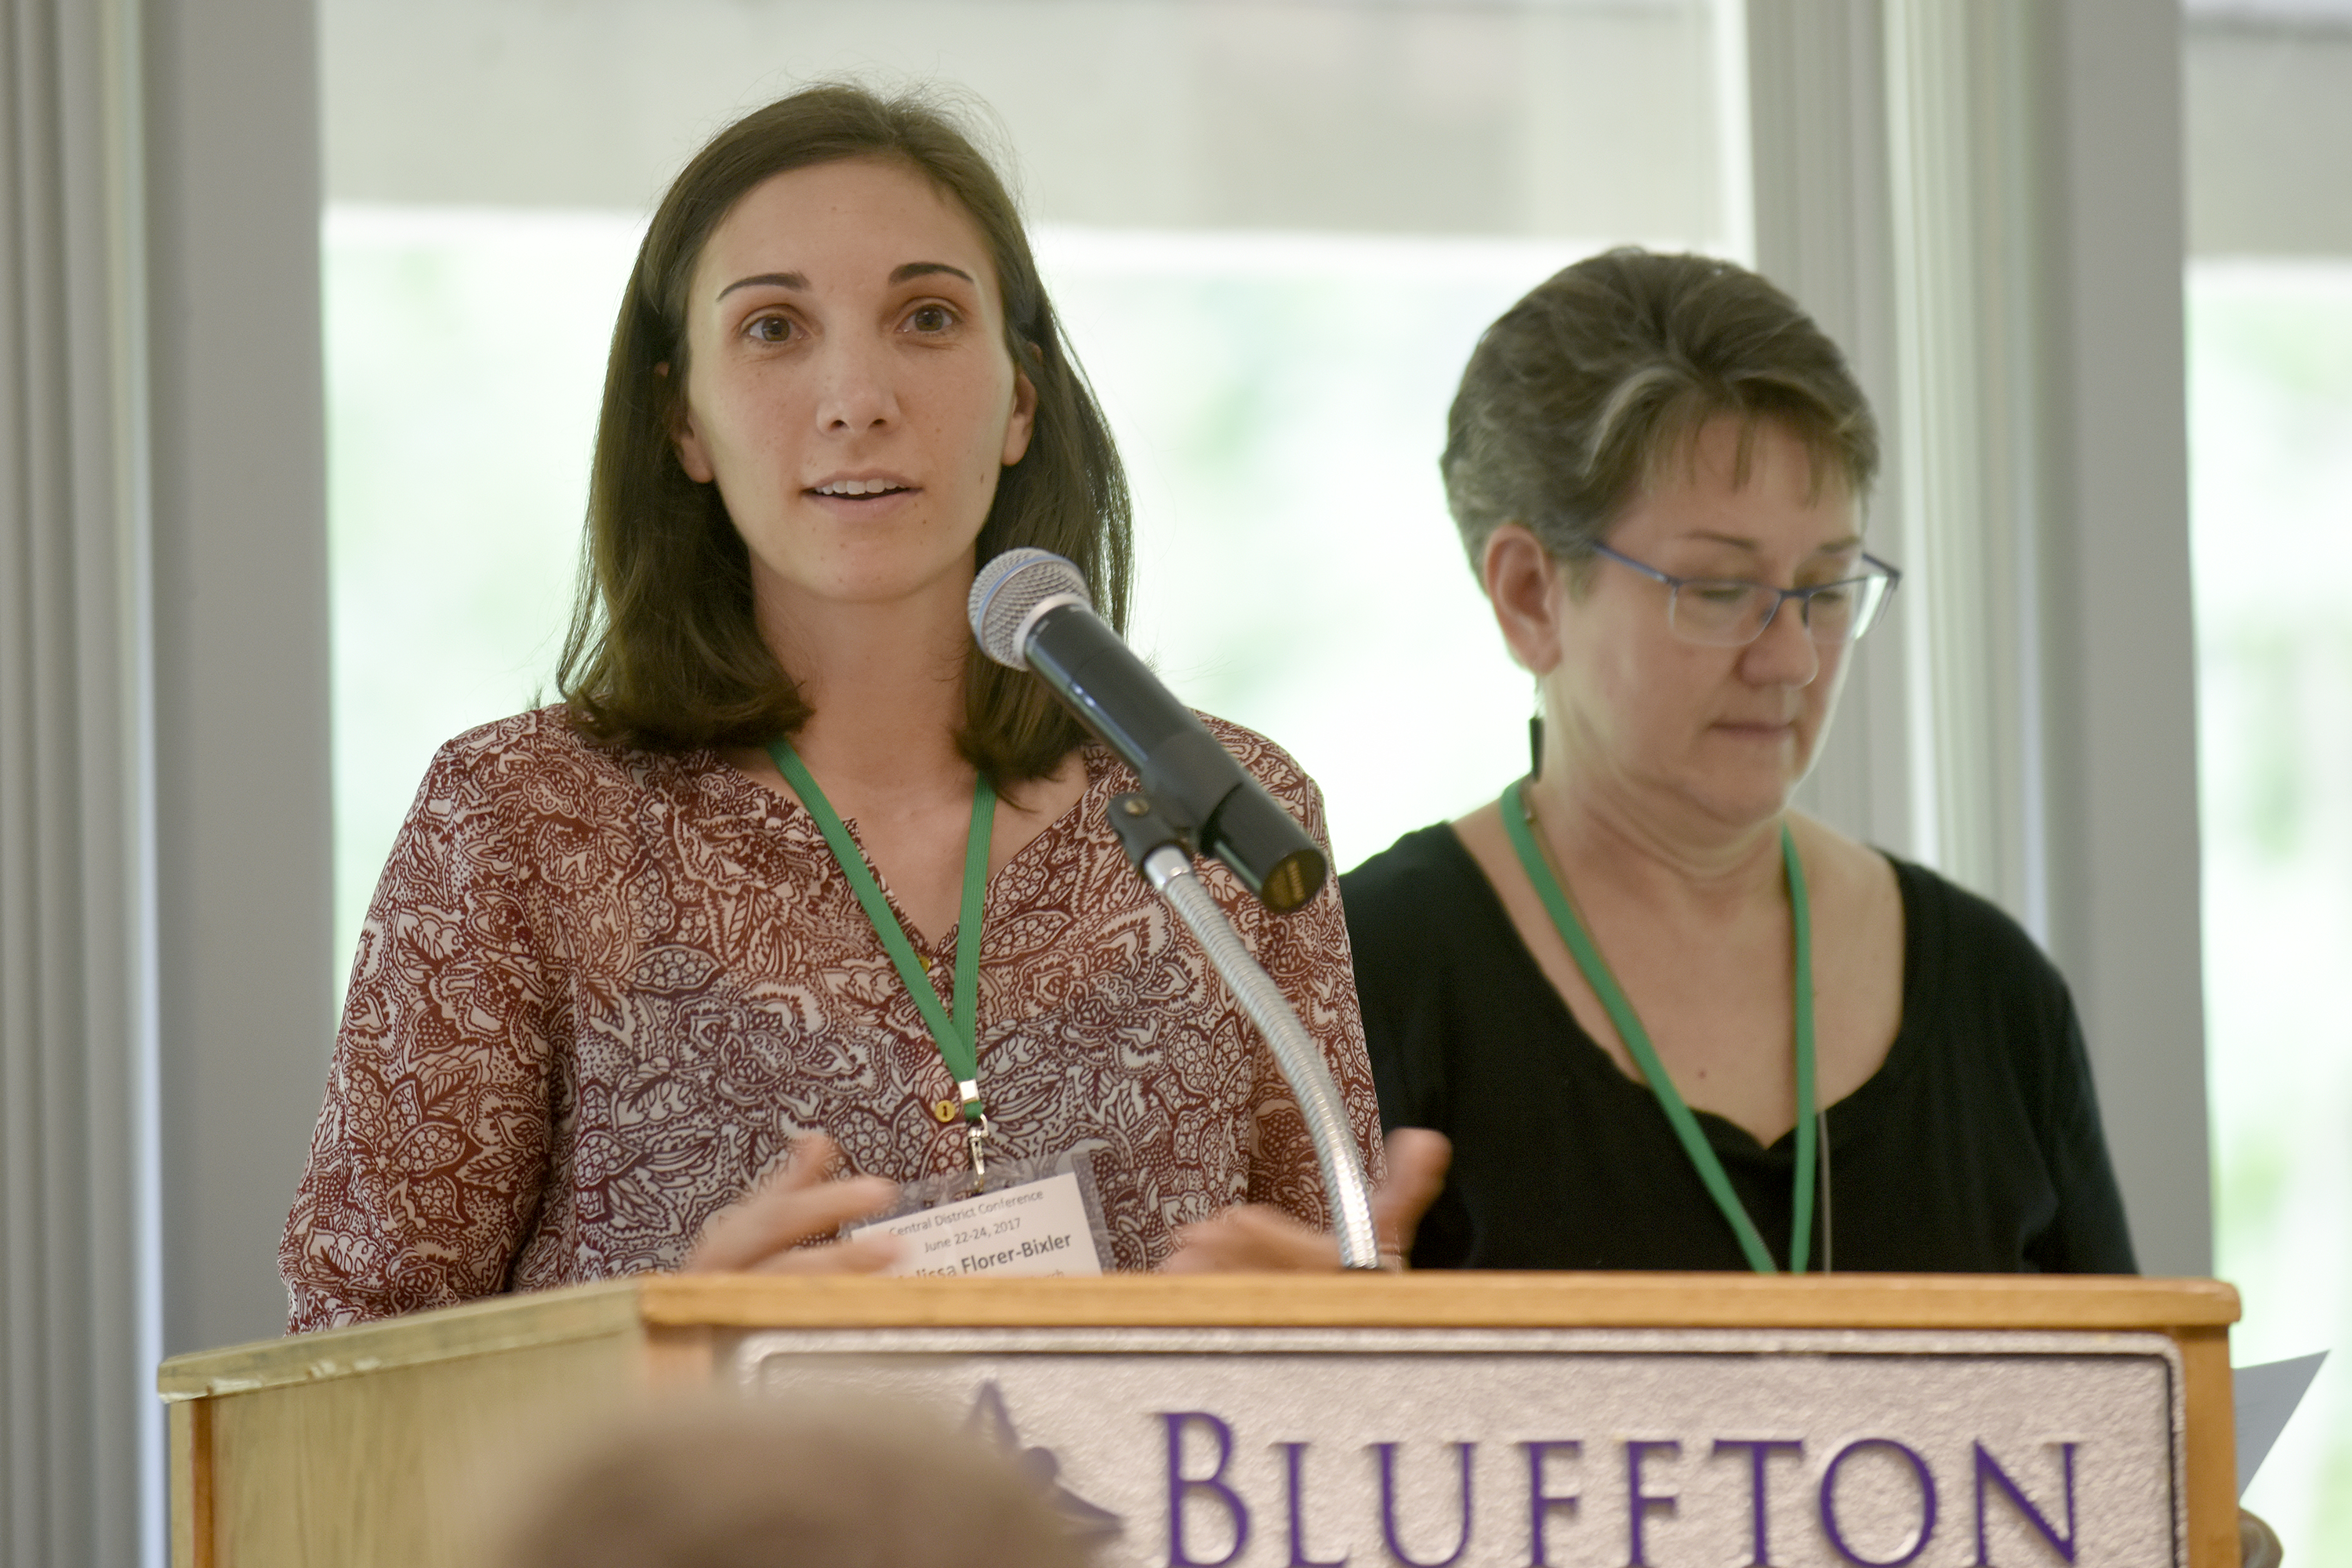 Melissa Florer Bixler (left) and Brenda North Martin introduce the Raleigh congregation during Friday morning sessions at Central District Conference, Friday, June 23, 2017, at Bluffton University, Bluffton, OH. Photograph by J. Tyler Klassen